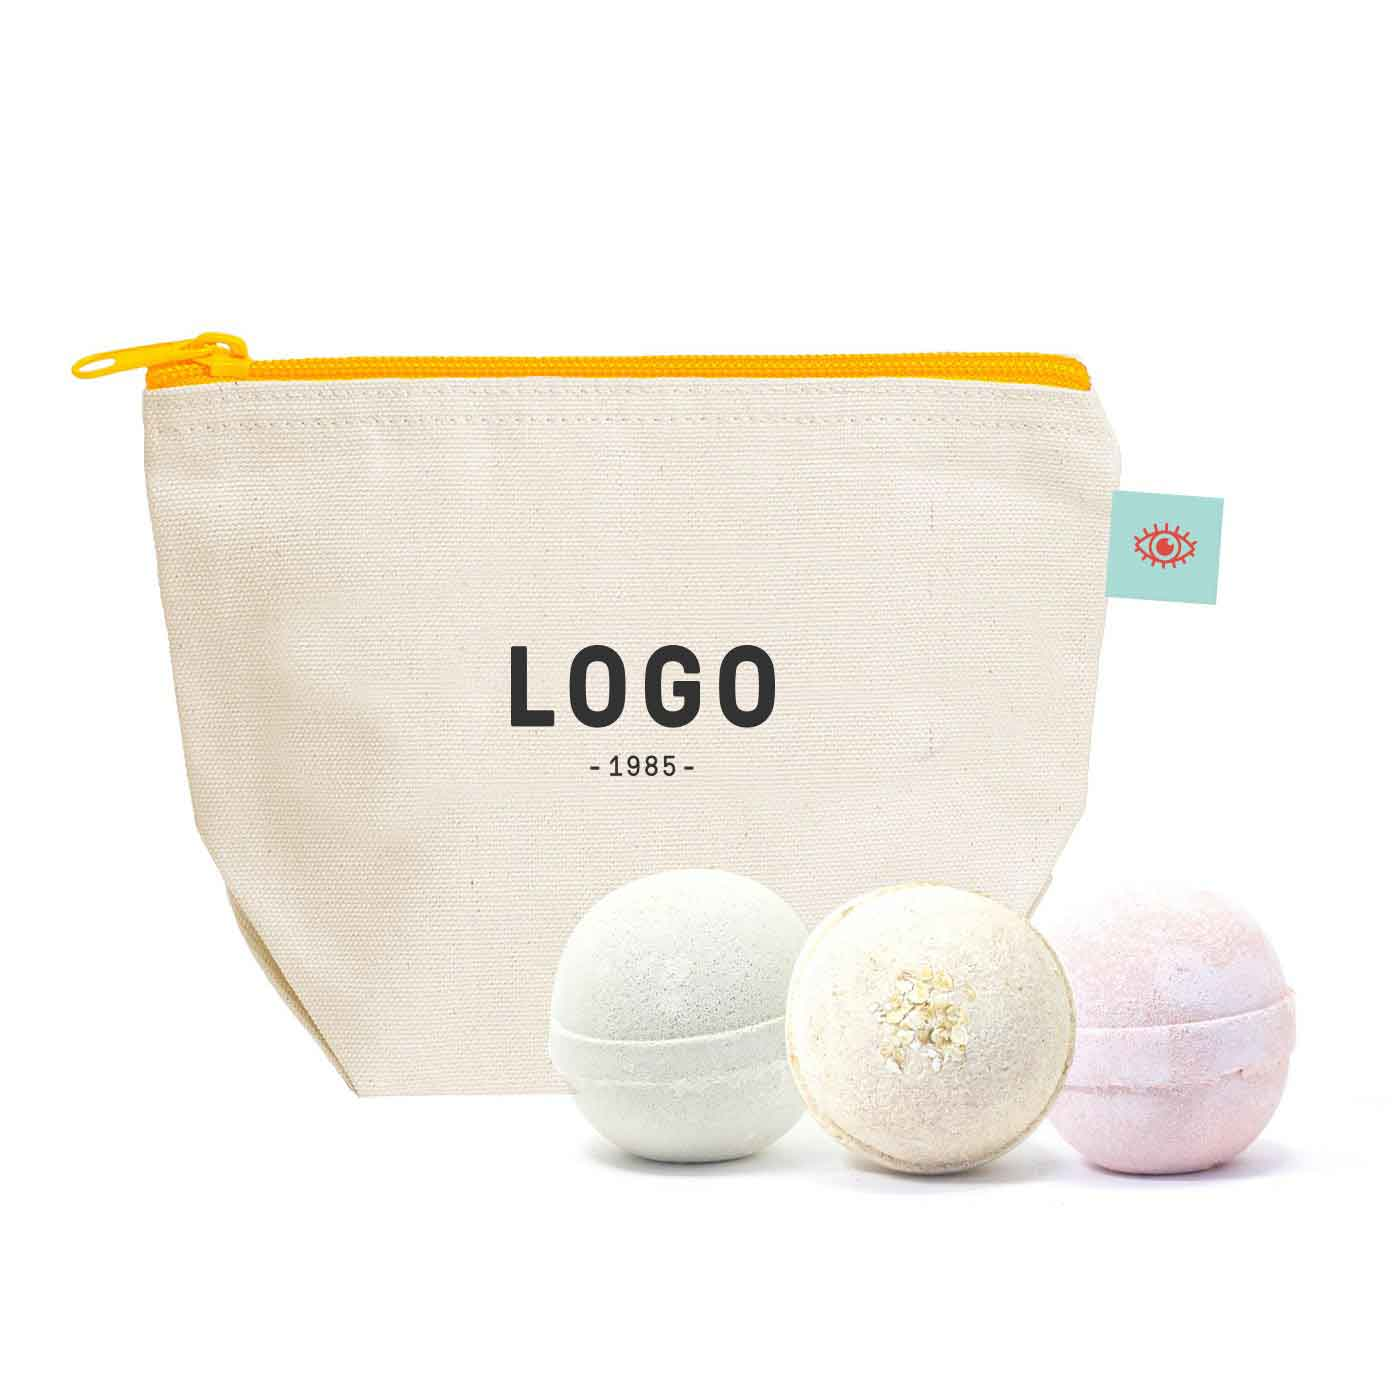 130262 artisan bath bombs 4 pack custom canvas pouch with woven label